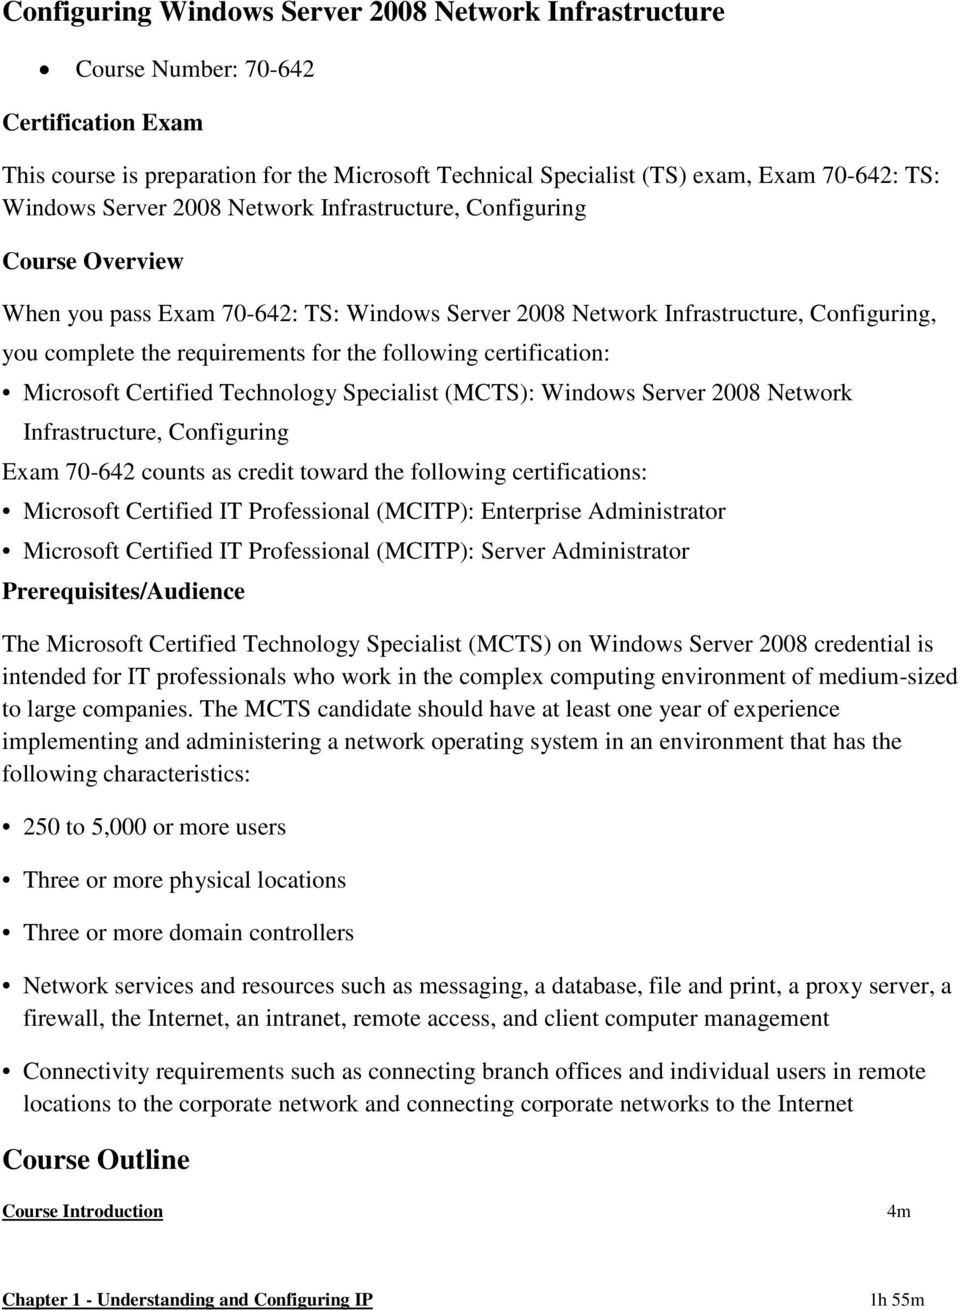 certification: Microsoft Certified Technology Specialist (MCTS): Windows Server 2008 Network Infrastructure, Configuring Exam 70-642 counts as credit toward the following certifications: Microsoft